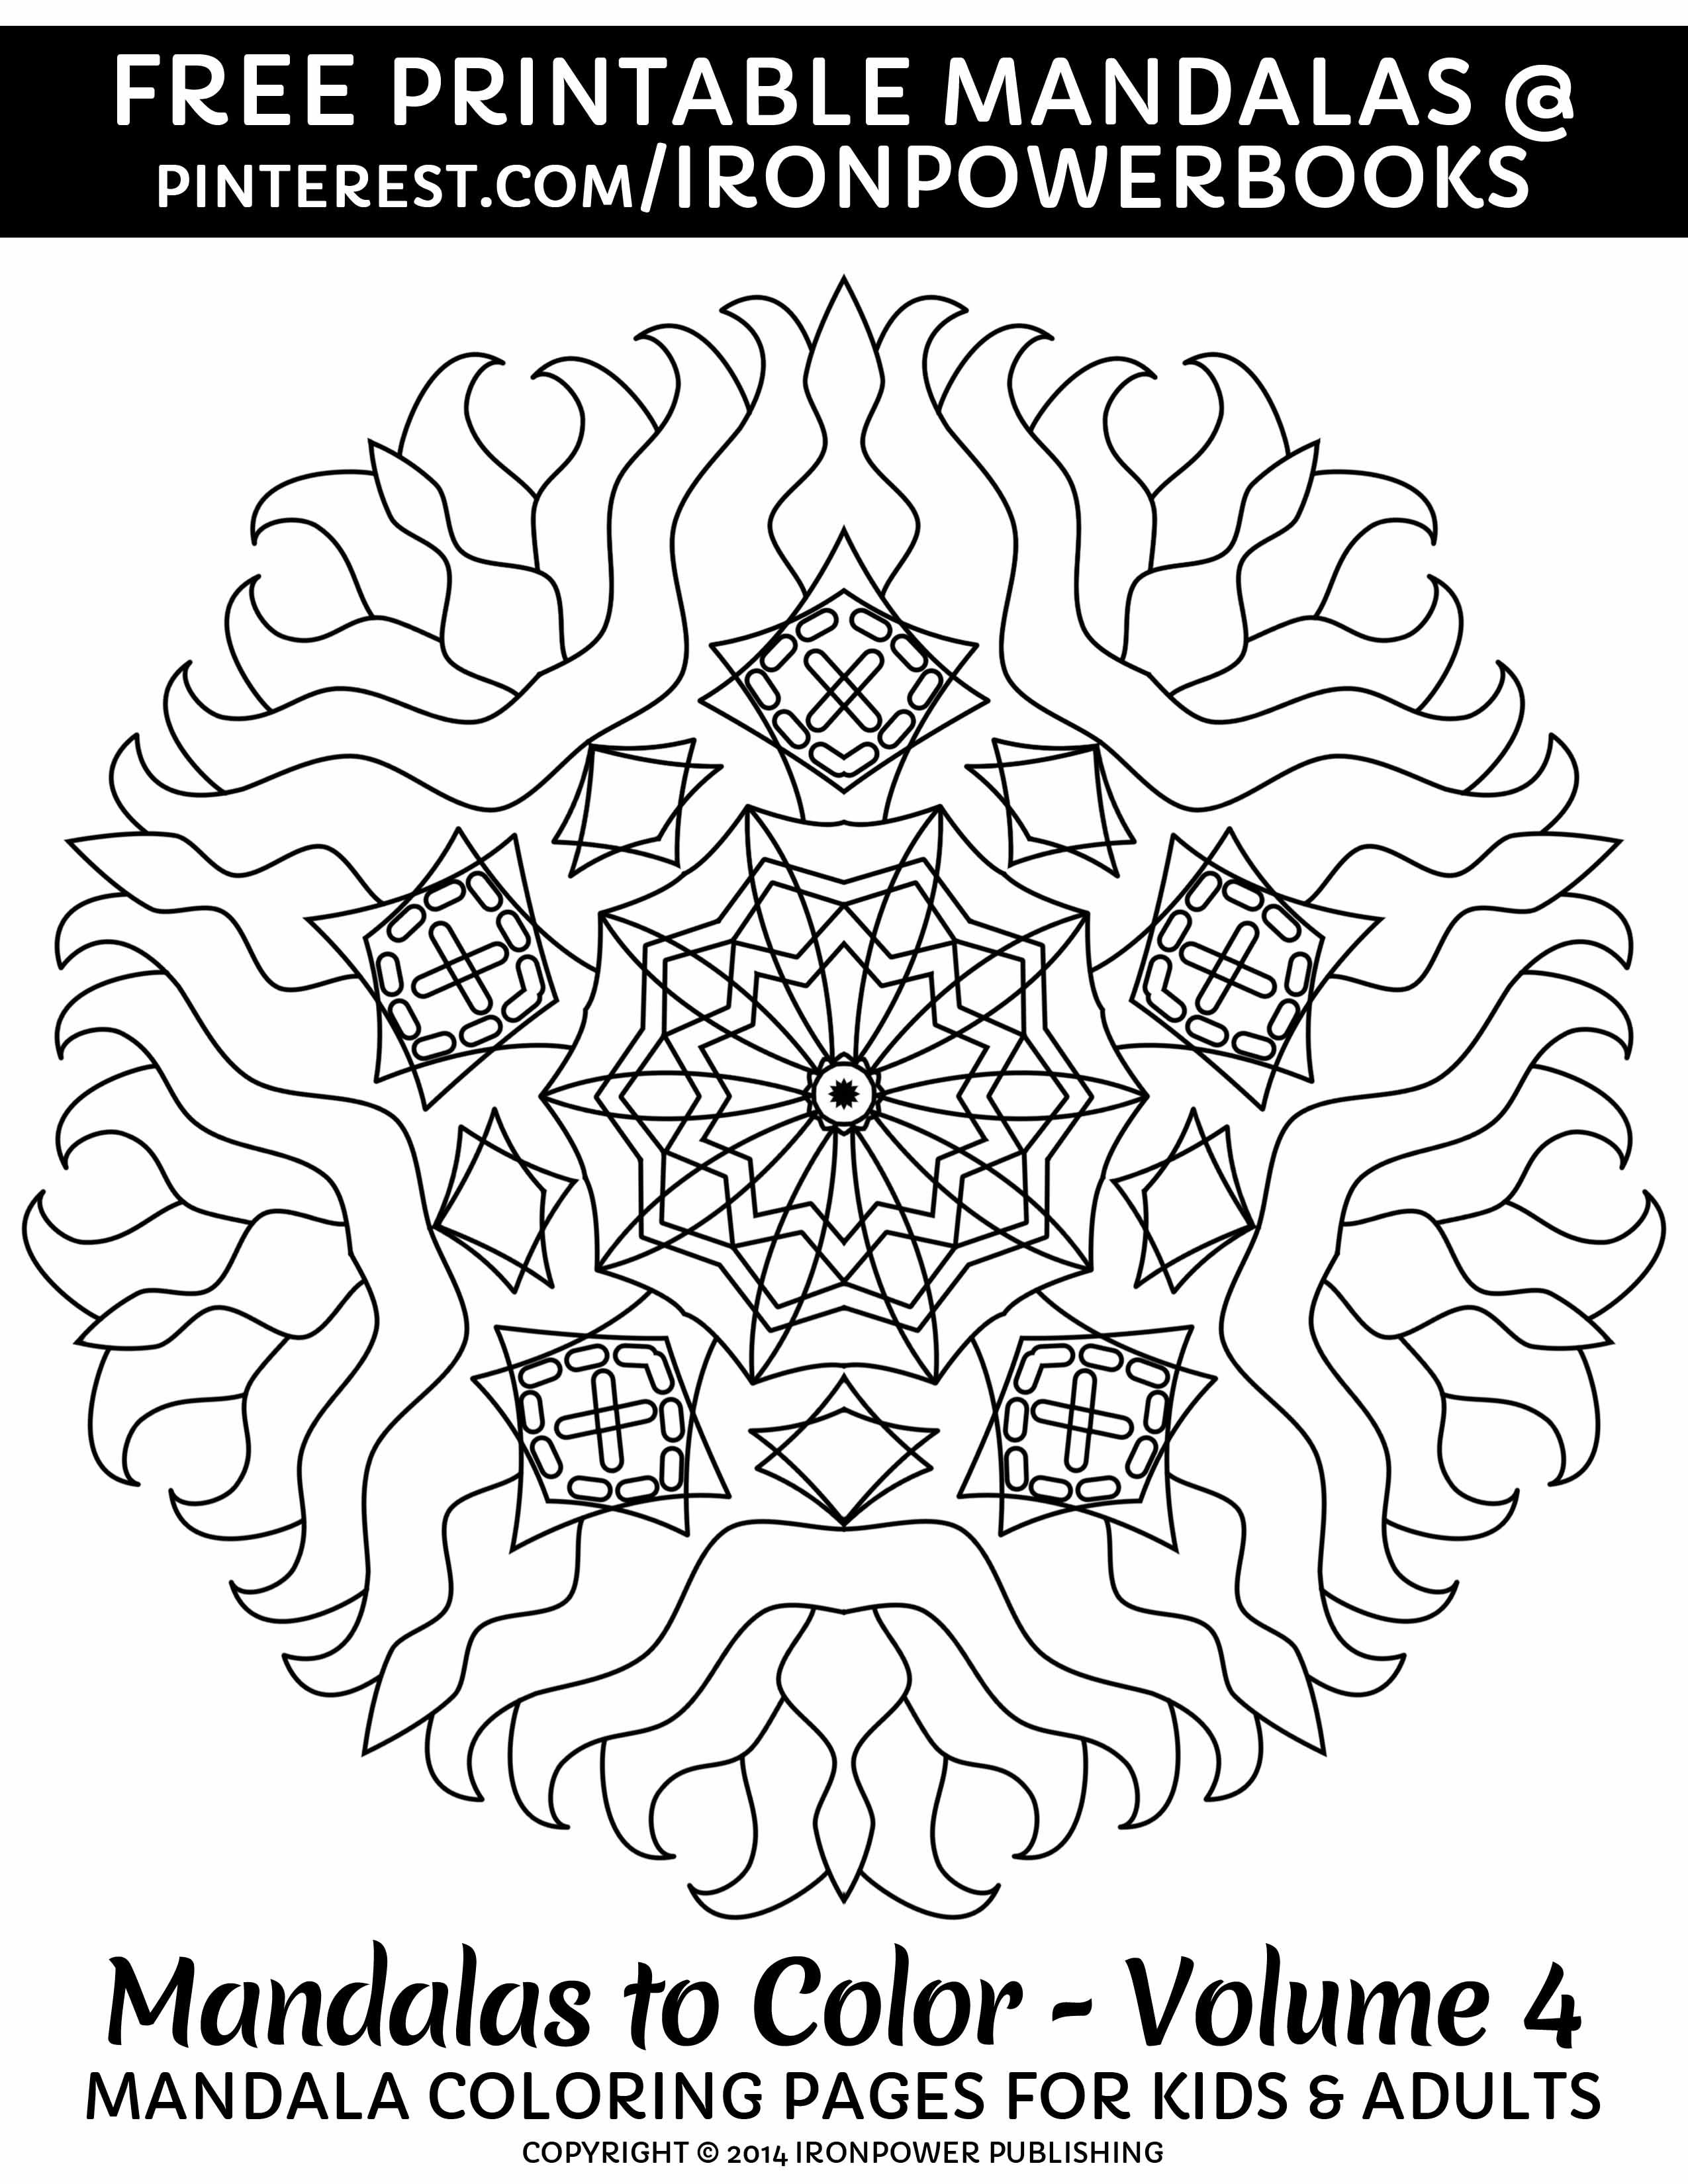 Easy Art Therapy Coloring Pages Mandalas Printable Pages From Ironpowerbooks For More 49 Ea Mandala Coloring Pages Mandala Coloring Books Mandala Coloring